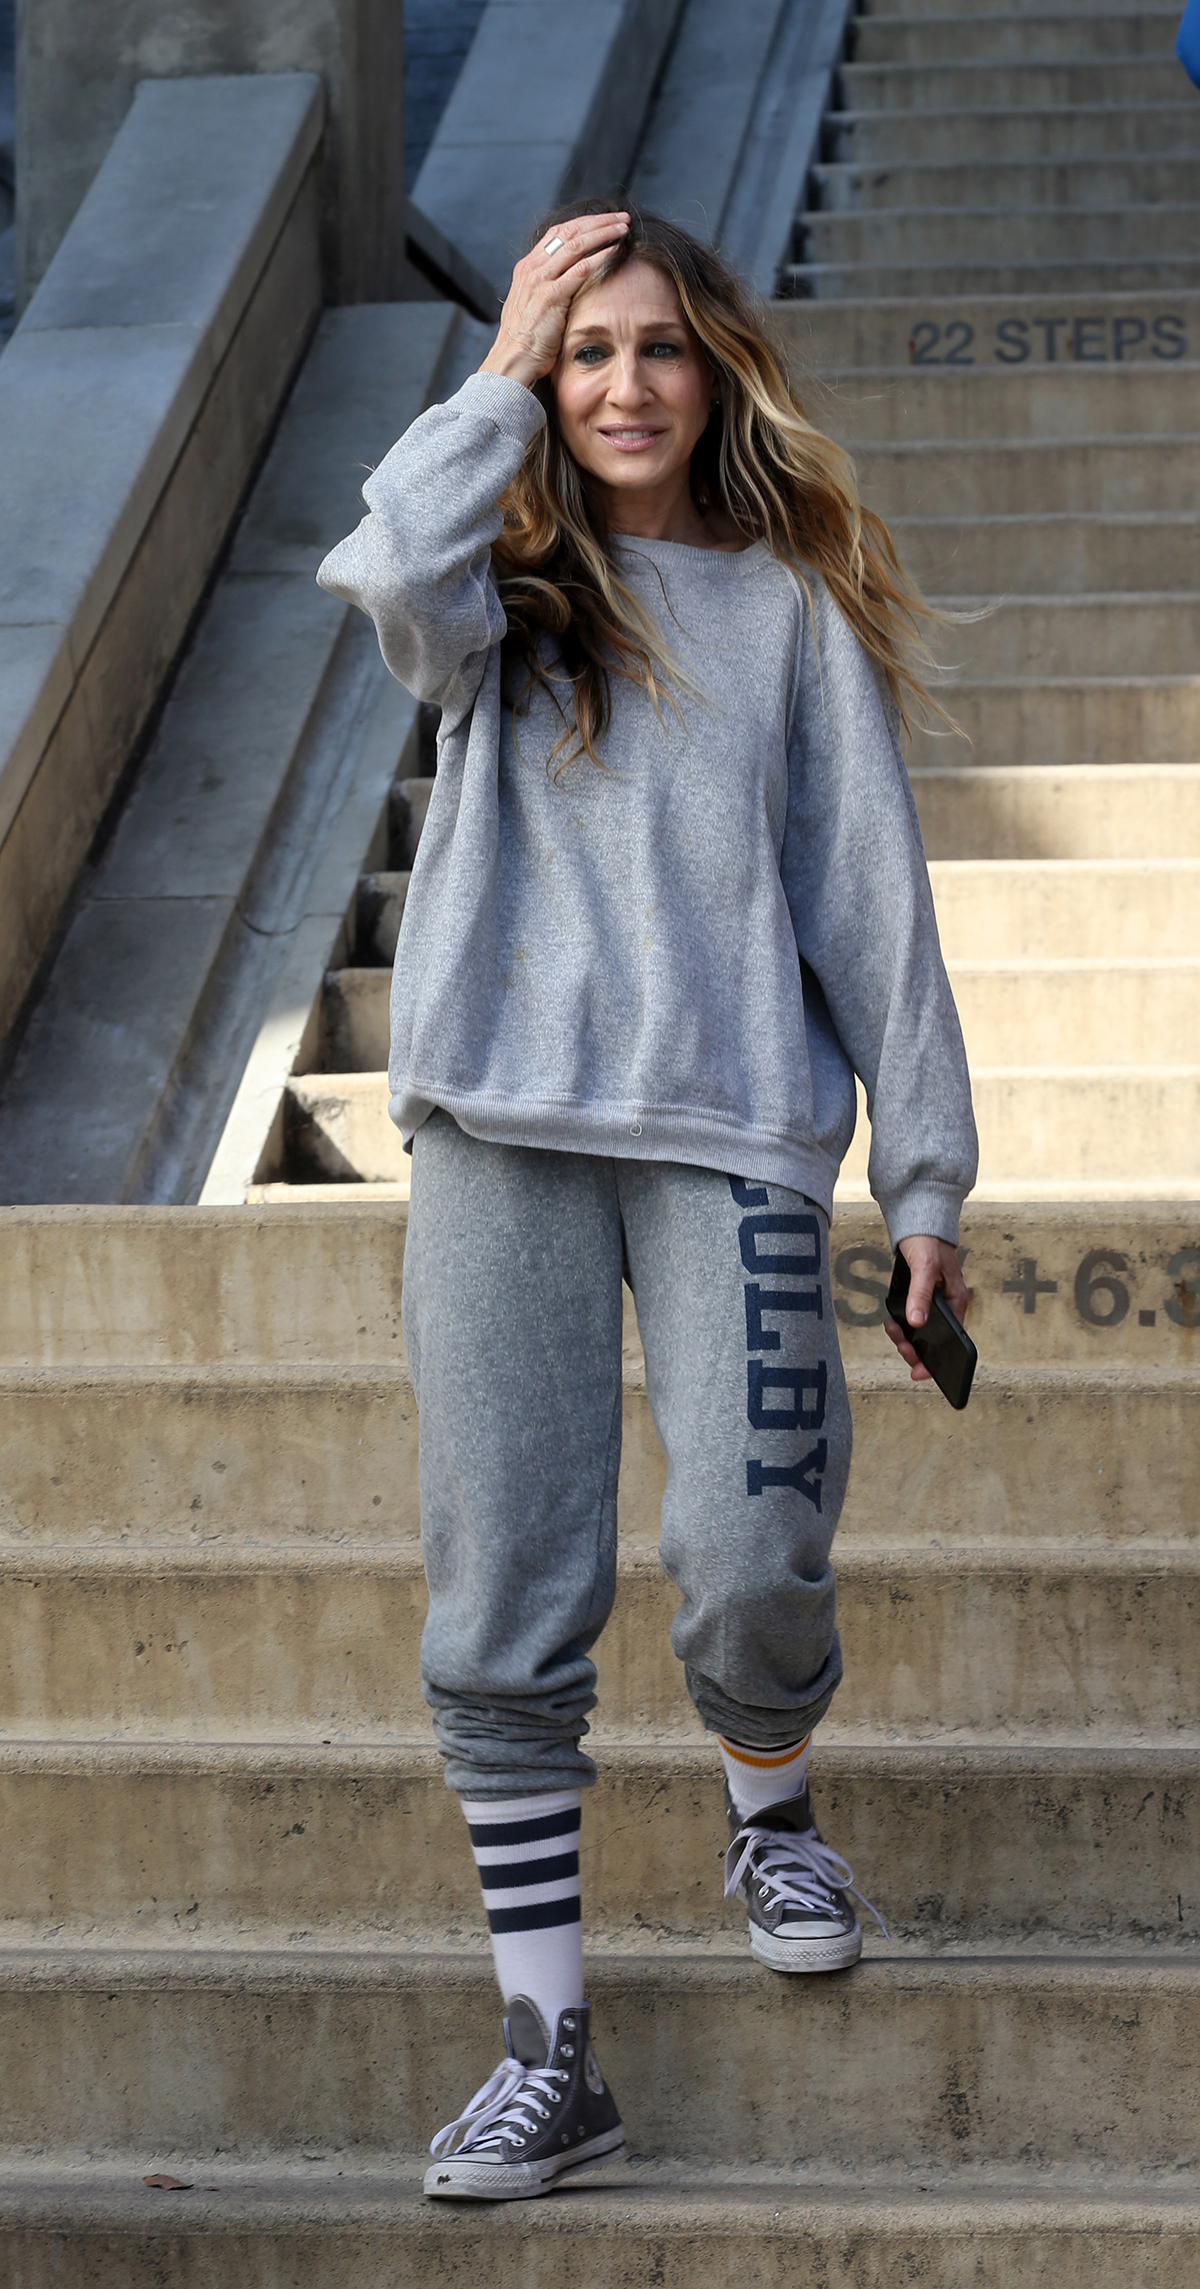 0d4babed5a8a9 6 Celebs Who Showed Us How to Style These Converse Sneakers